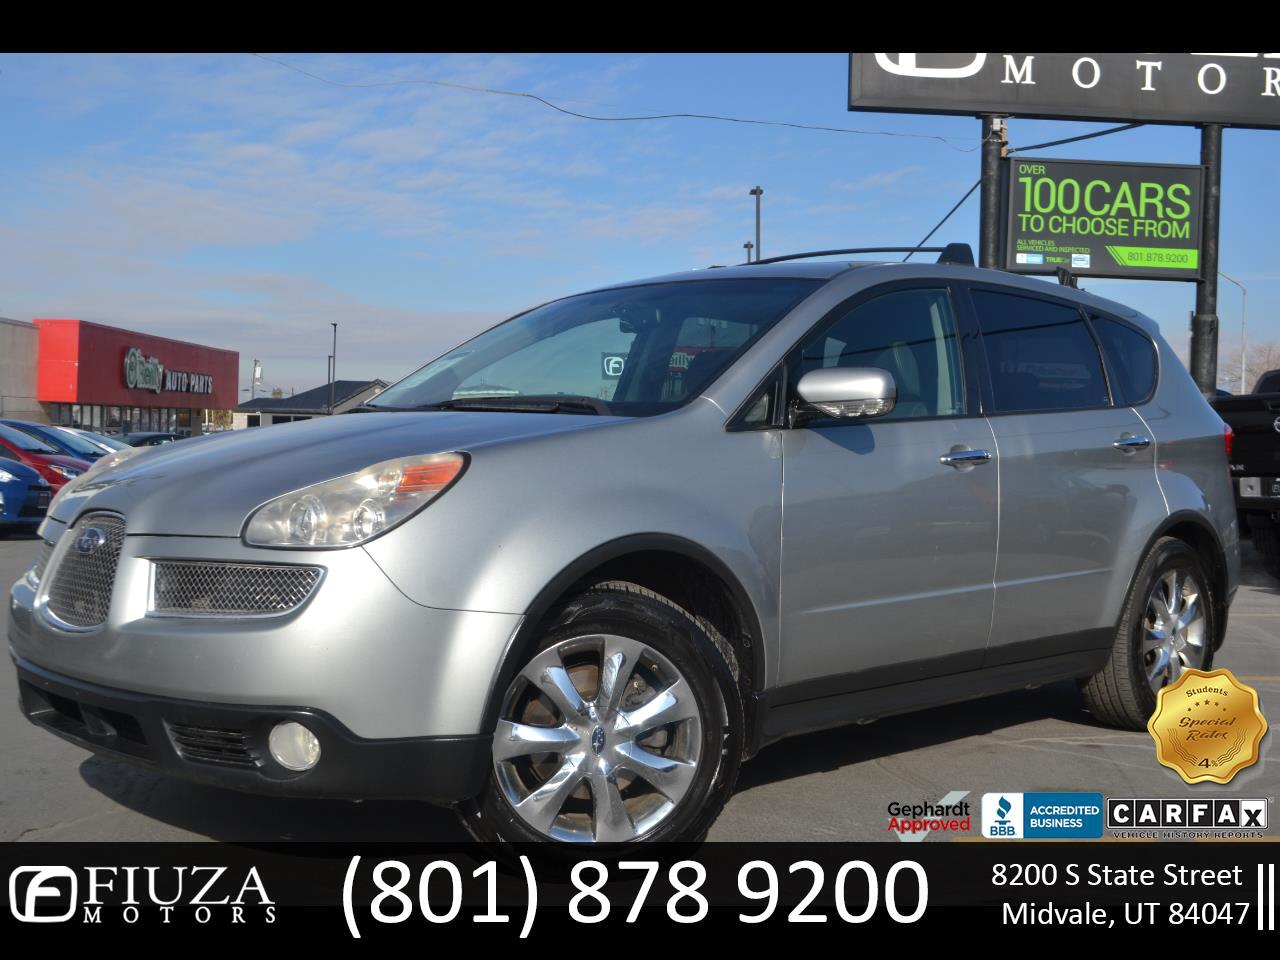 Subaru B9 Tribeca AWD 4dr 7-Pass Ltd w/DVD/Navi Gray 2007